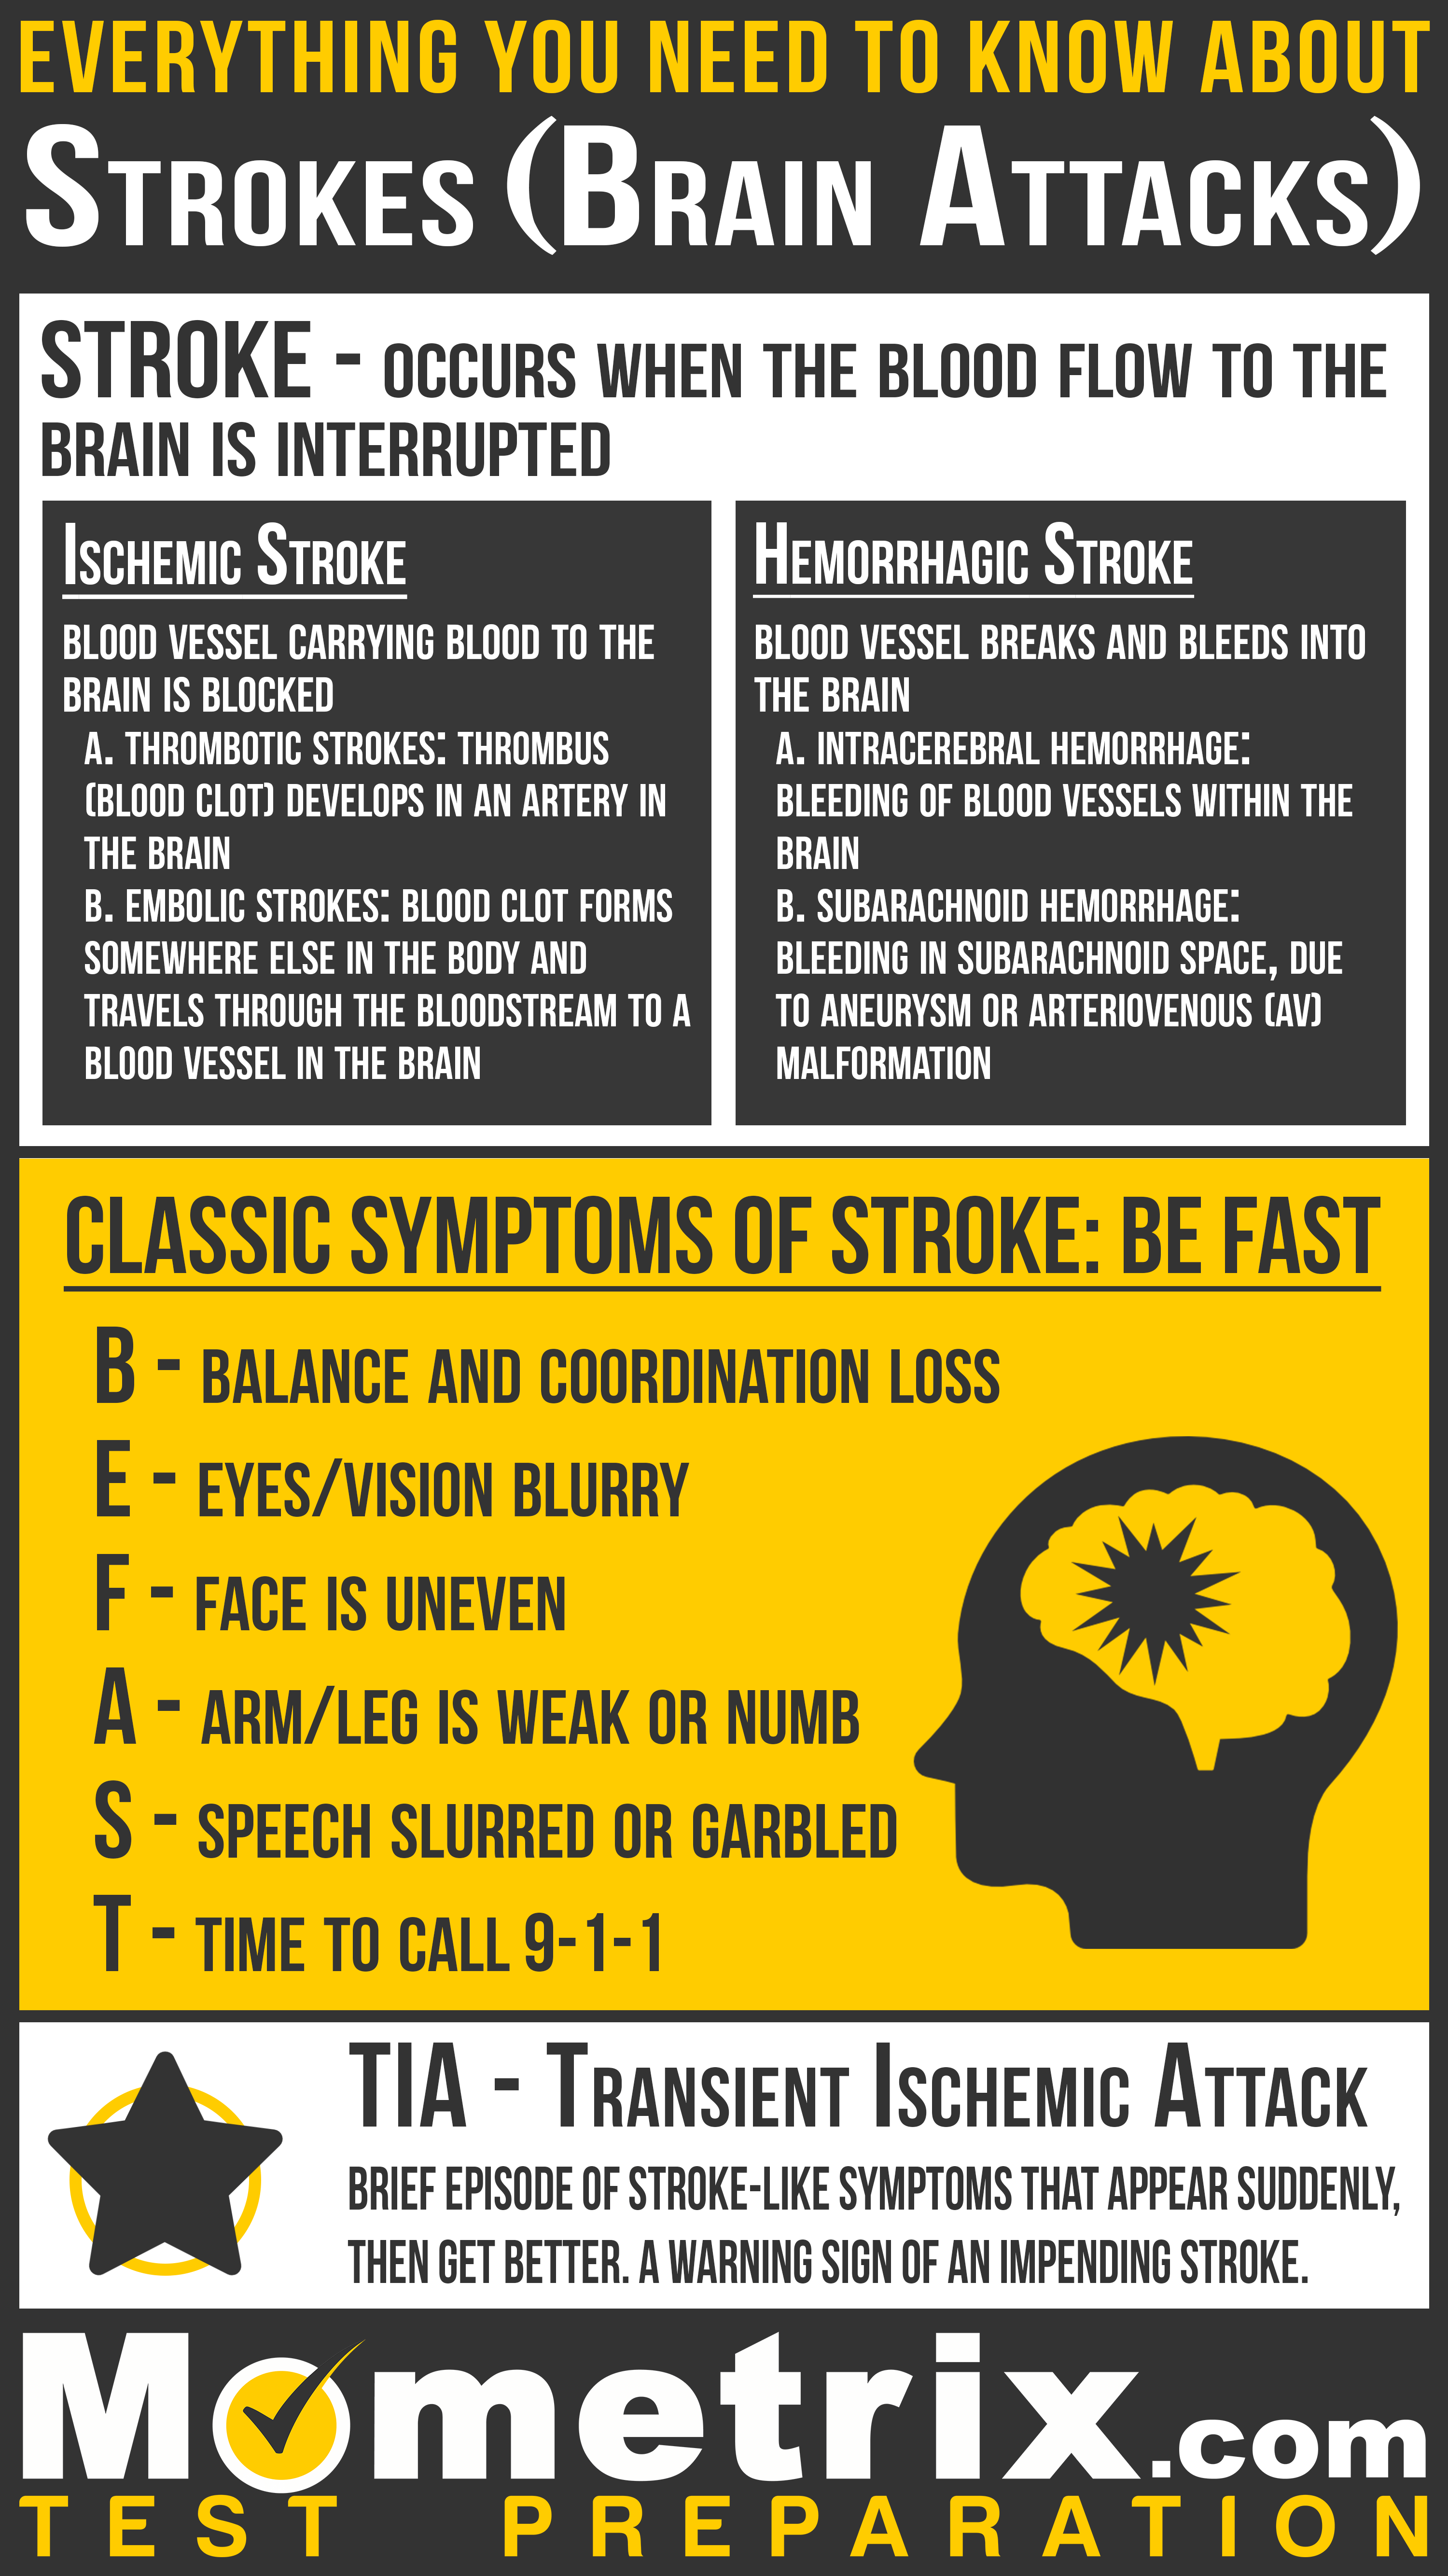 Infographic explaining strokes